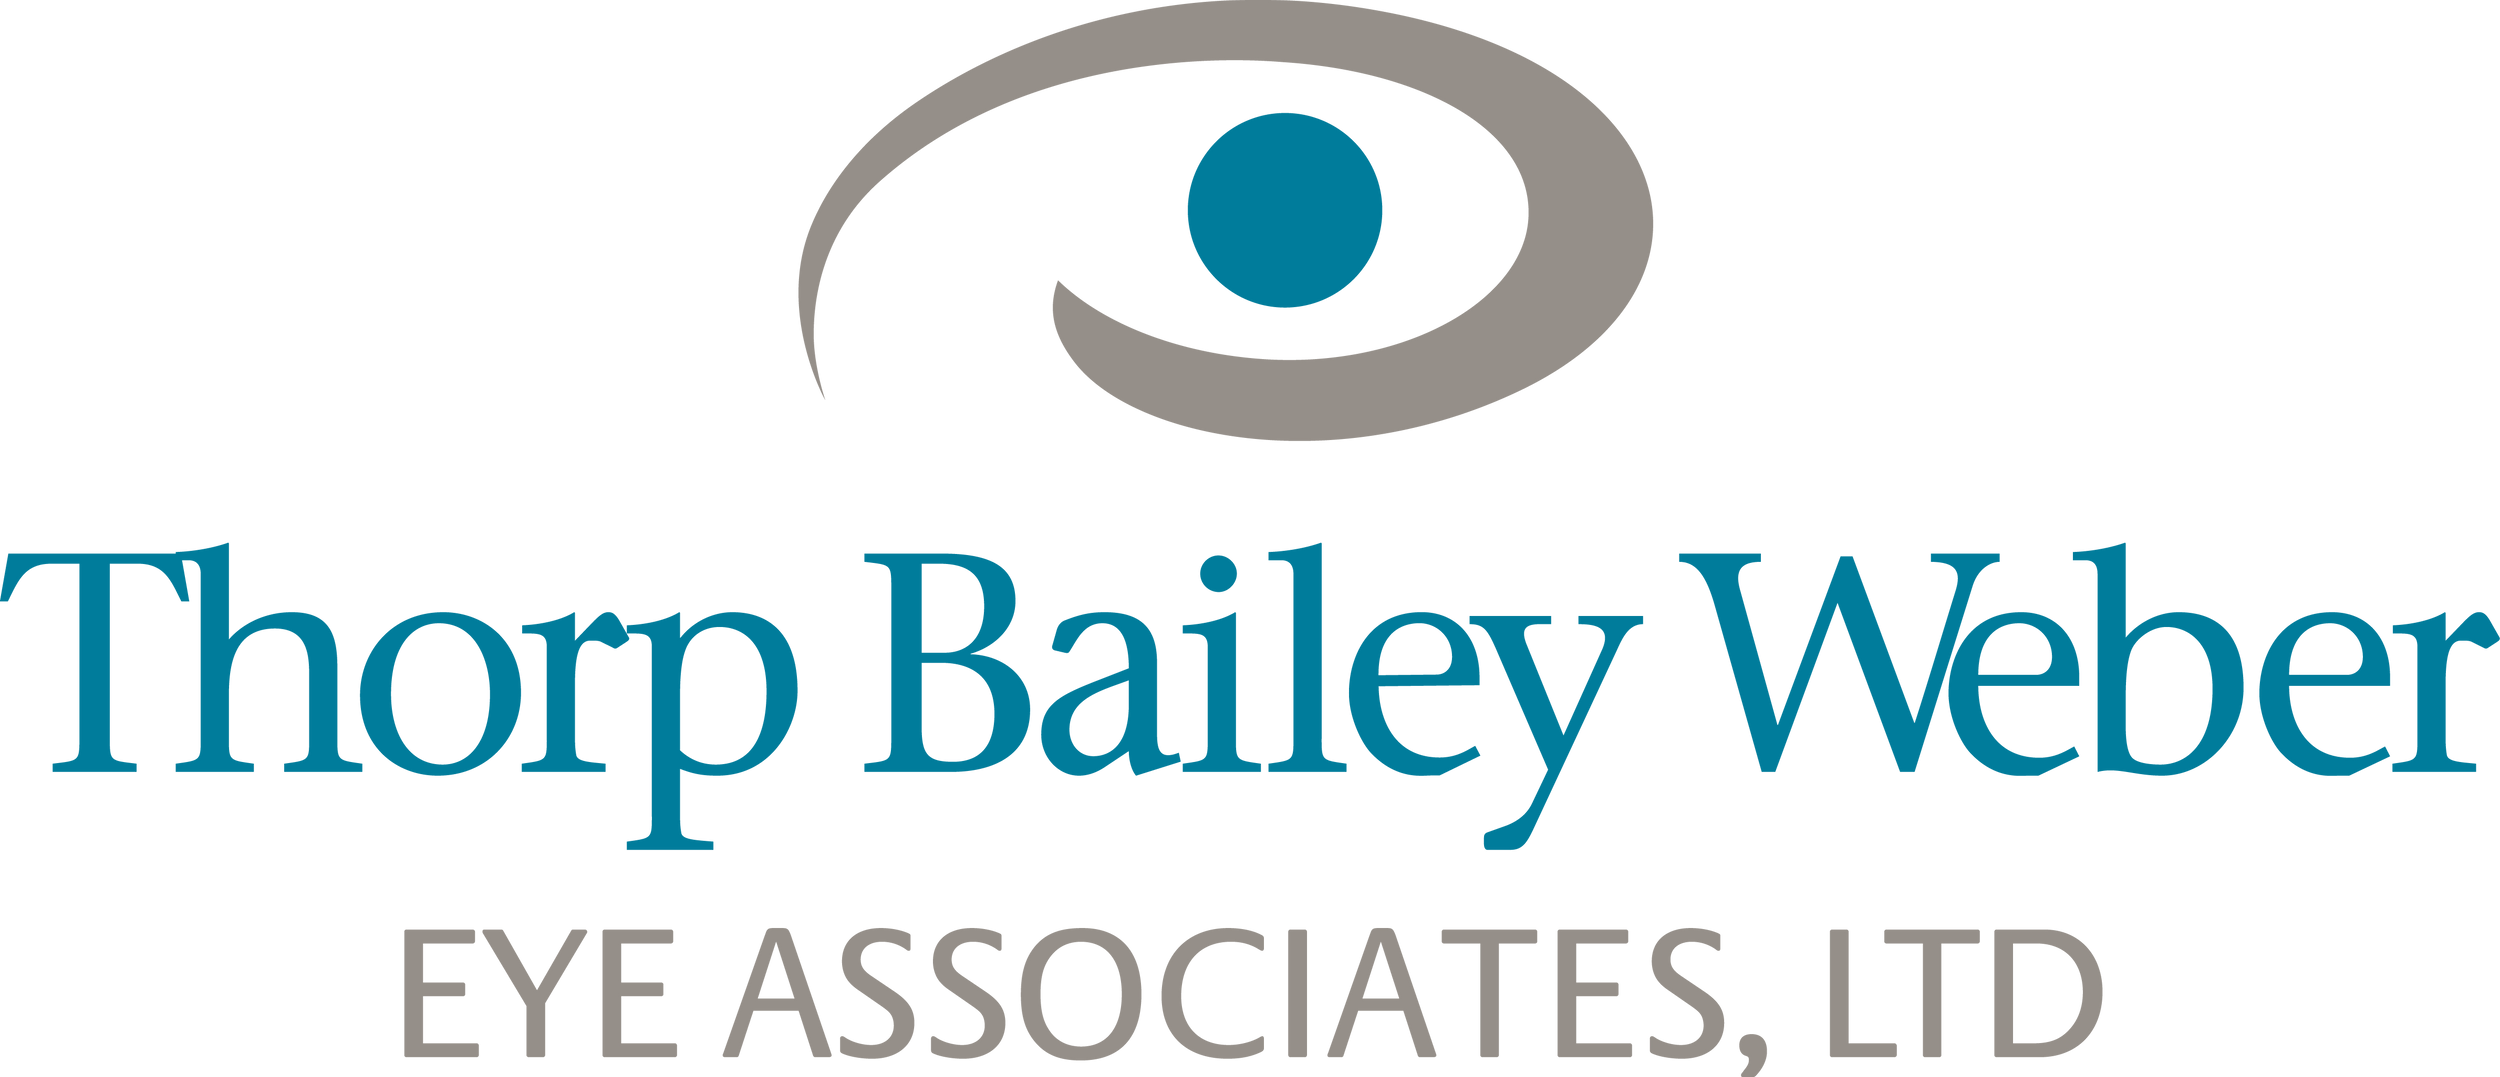 Eye Care in Plymouth Meeting PA - Thorp Bailey Weber Eye